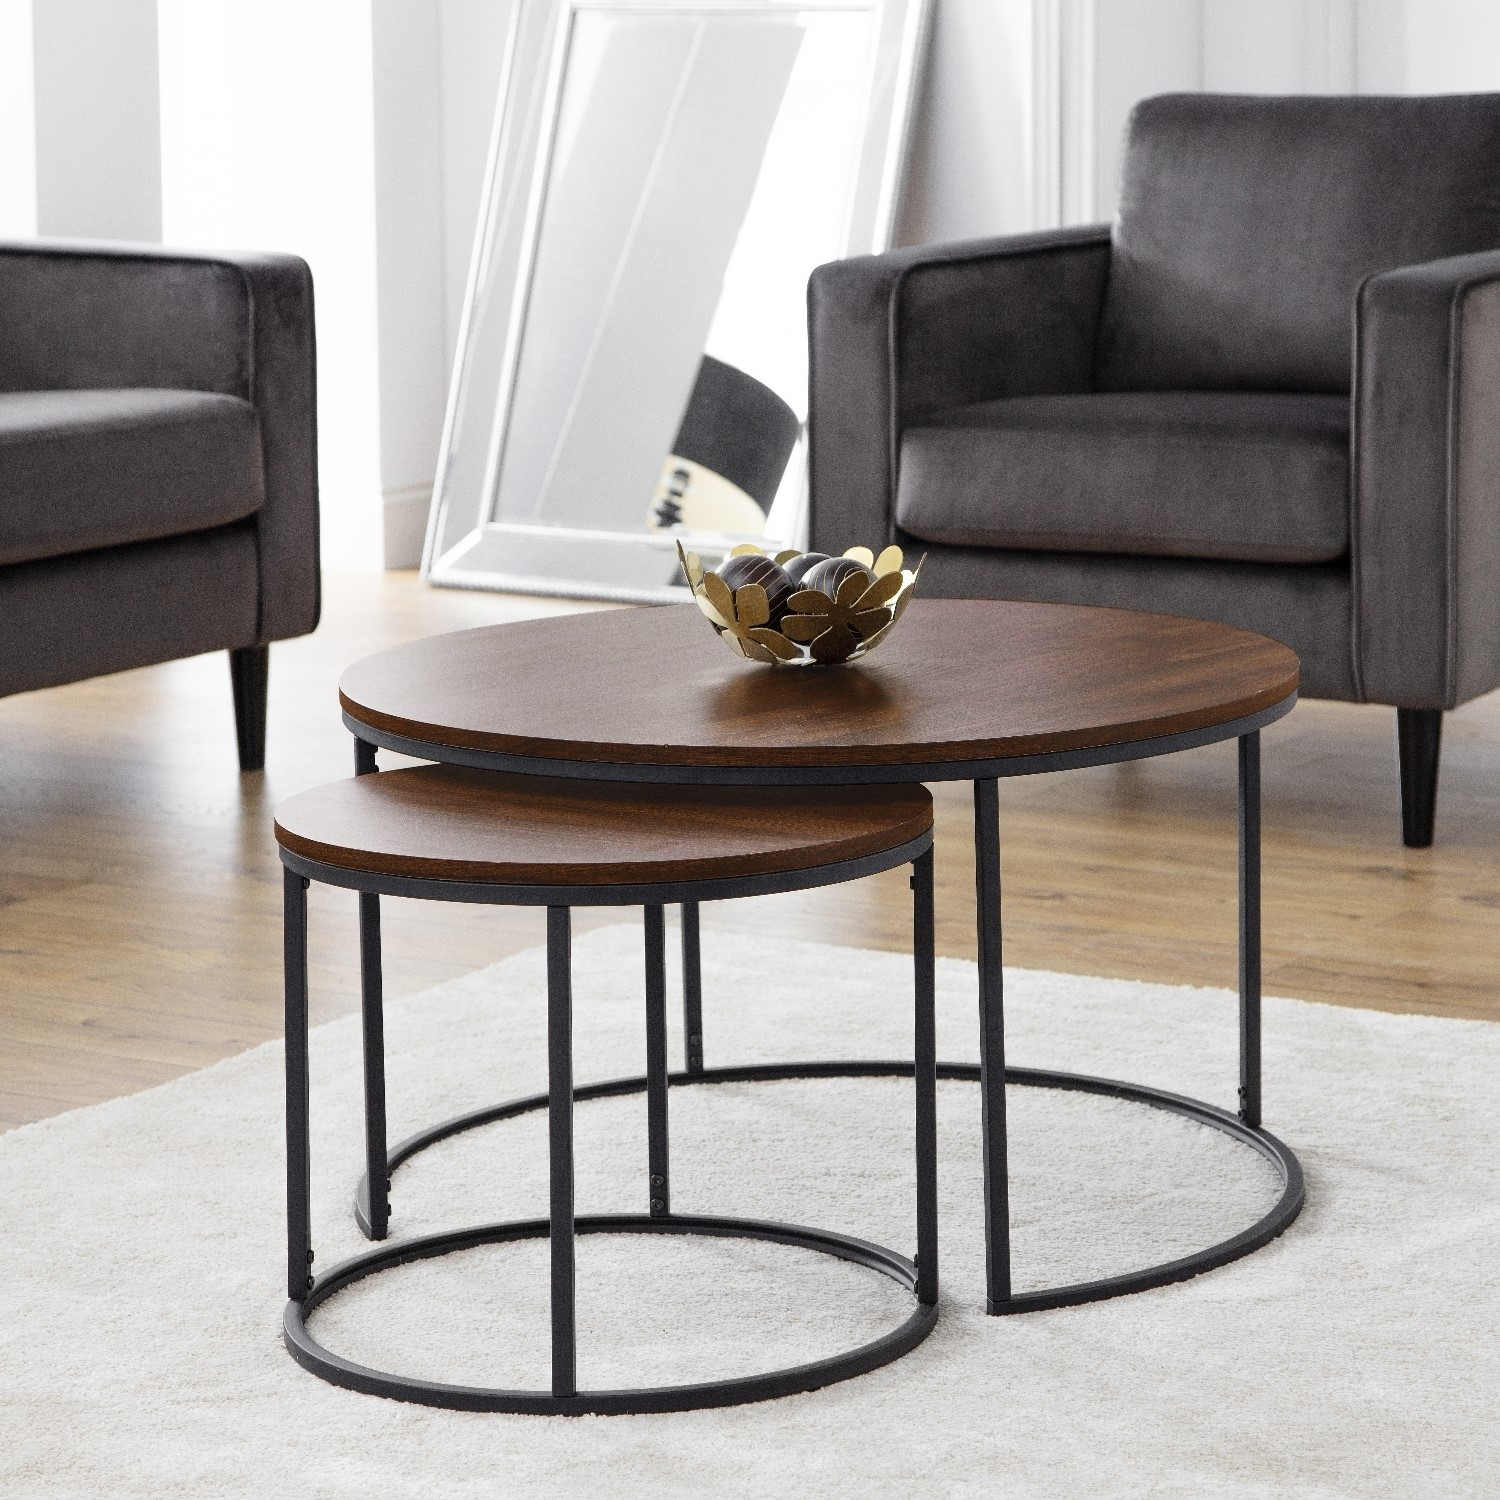 Picture of: Round Dark Wood Nest Of Coffee Tables With Black Metal Base Julian Bowen Bellini Furniture123